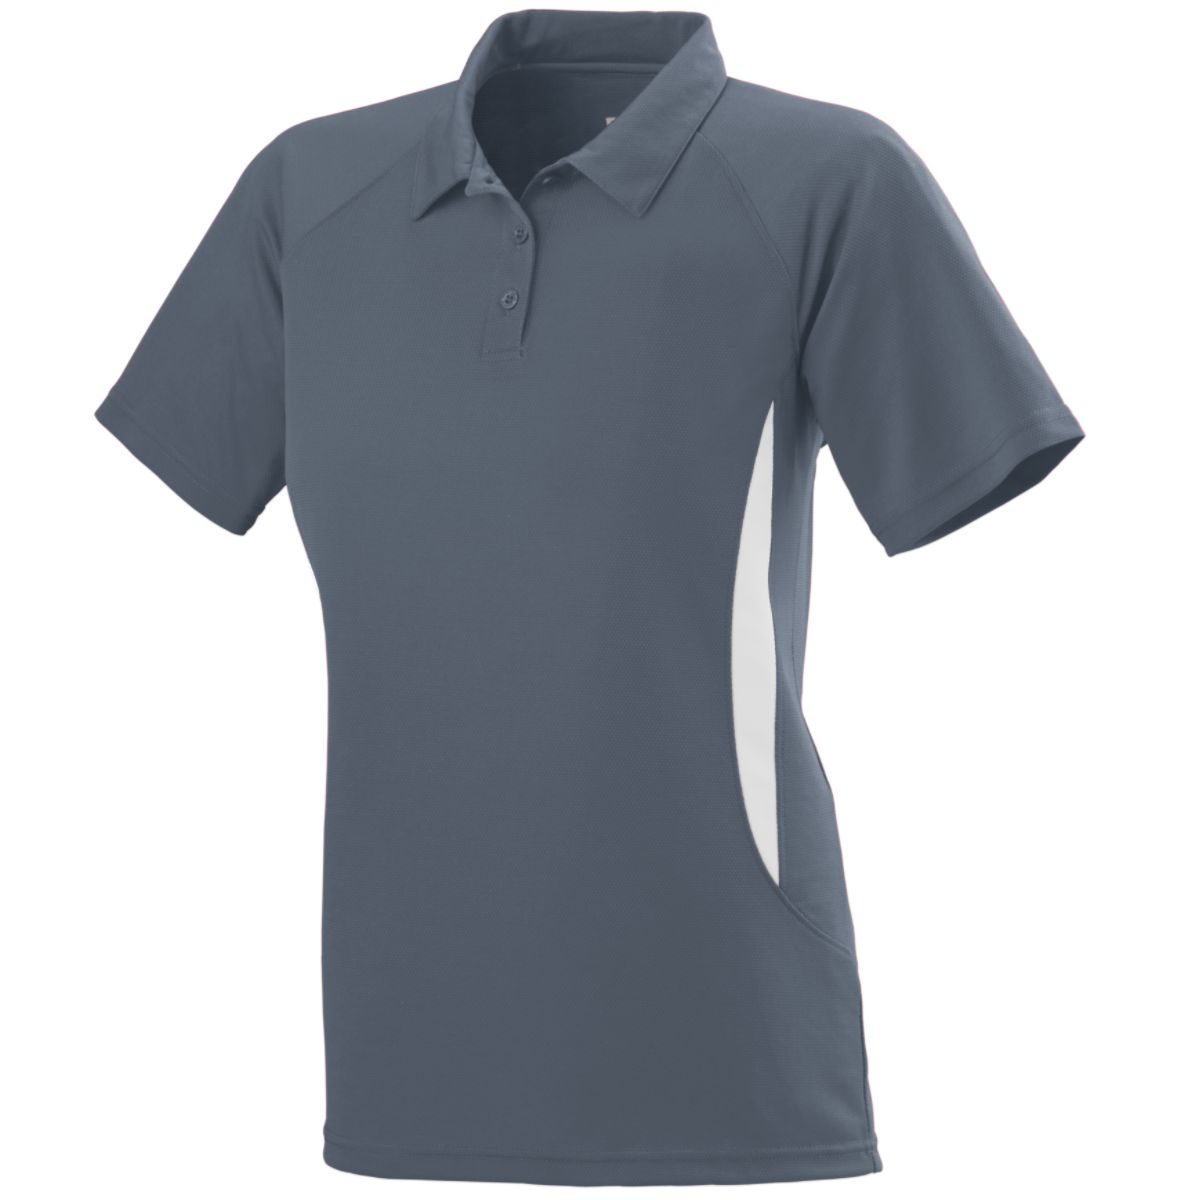 Augusta Ladies Mission Sport Shirt Grap/Whi L - image 1 of 1